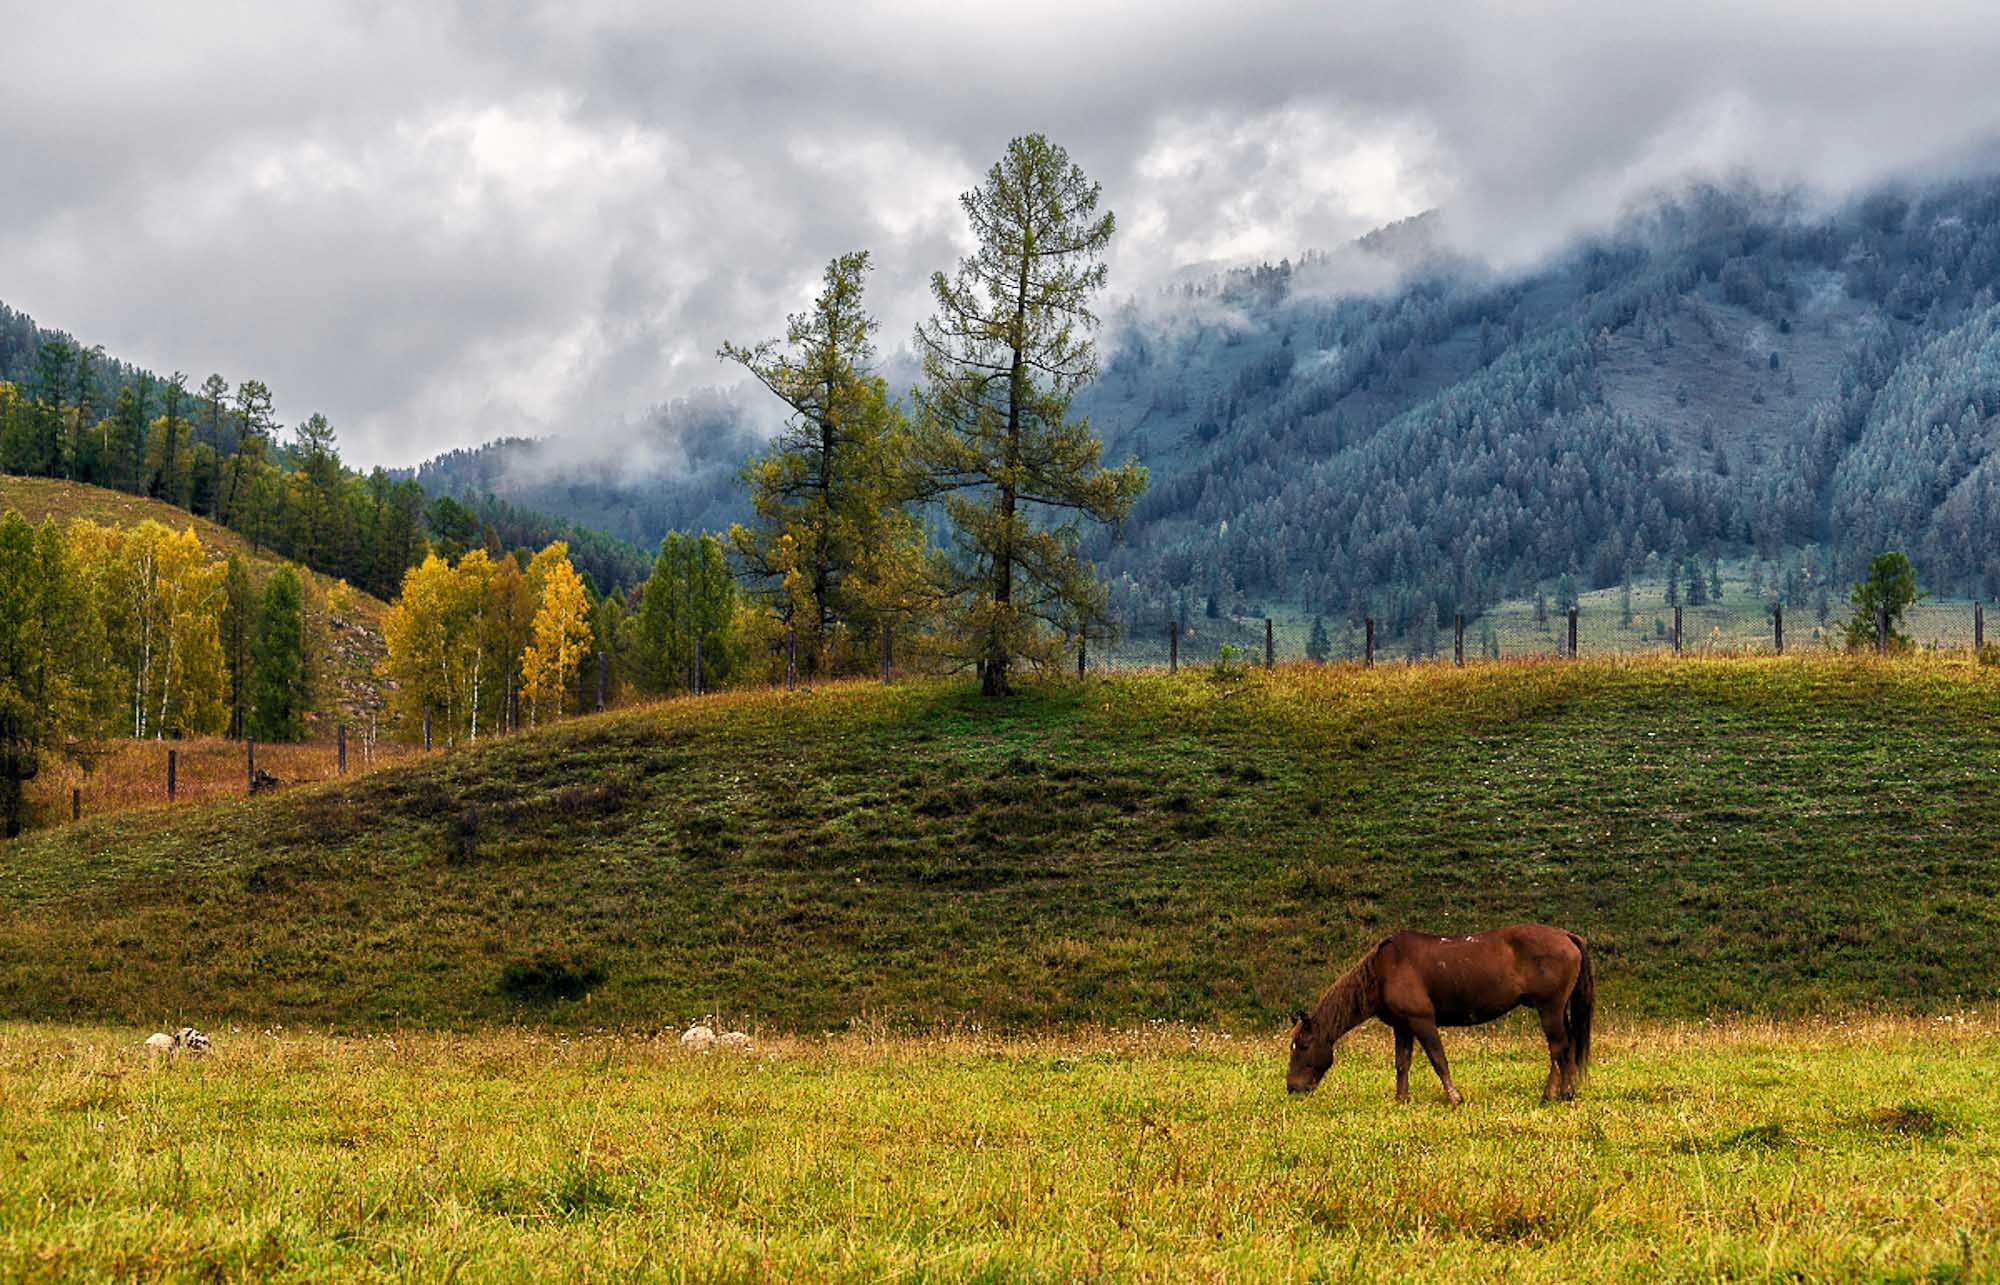 Altai's trademark – mountains and horses